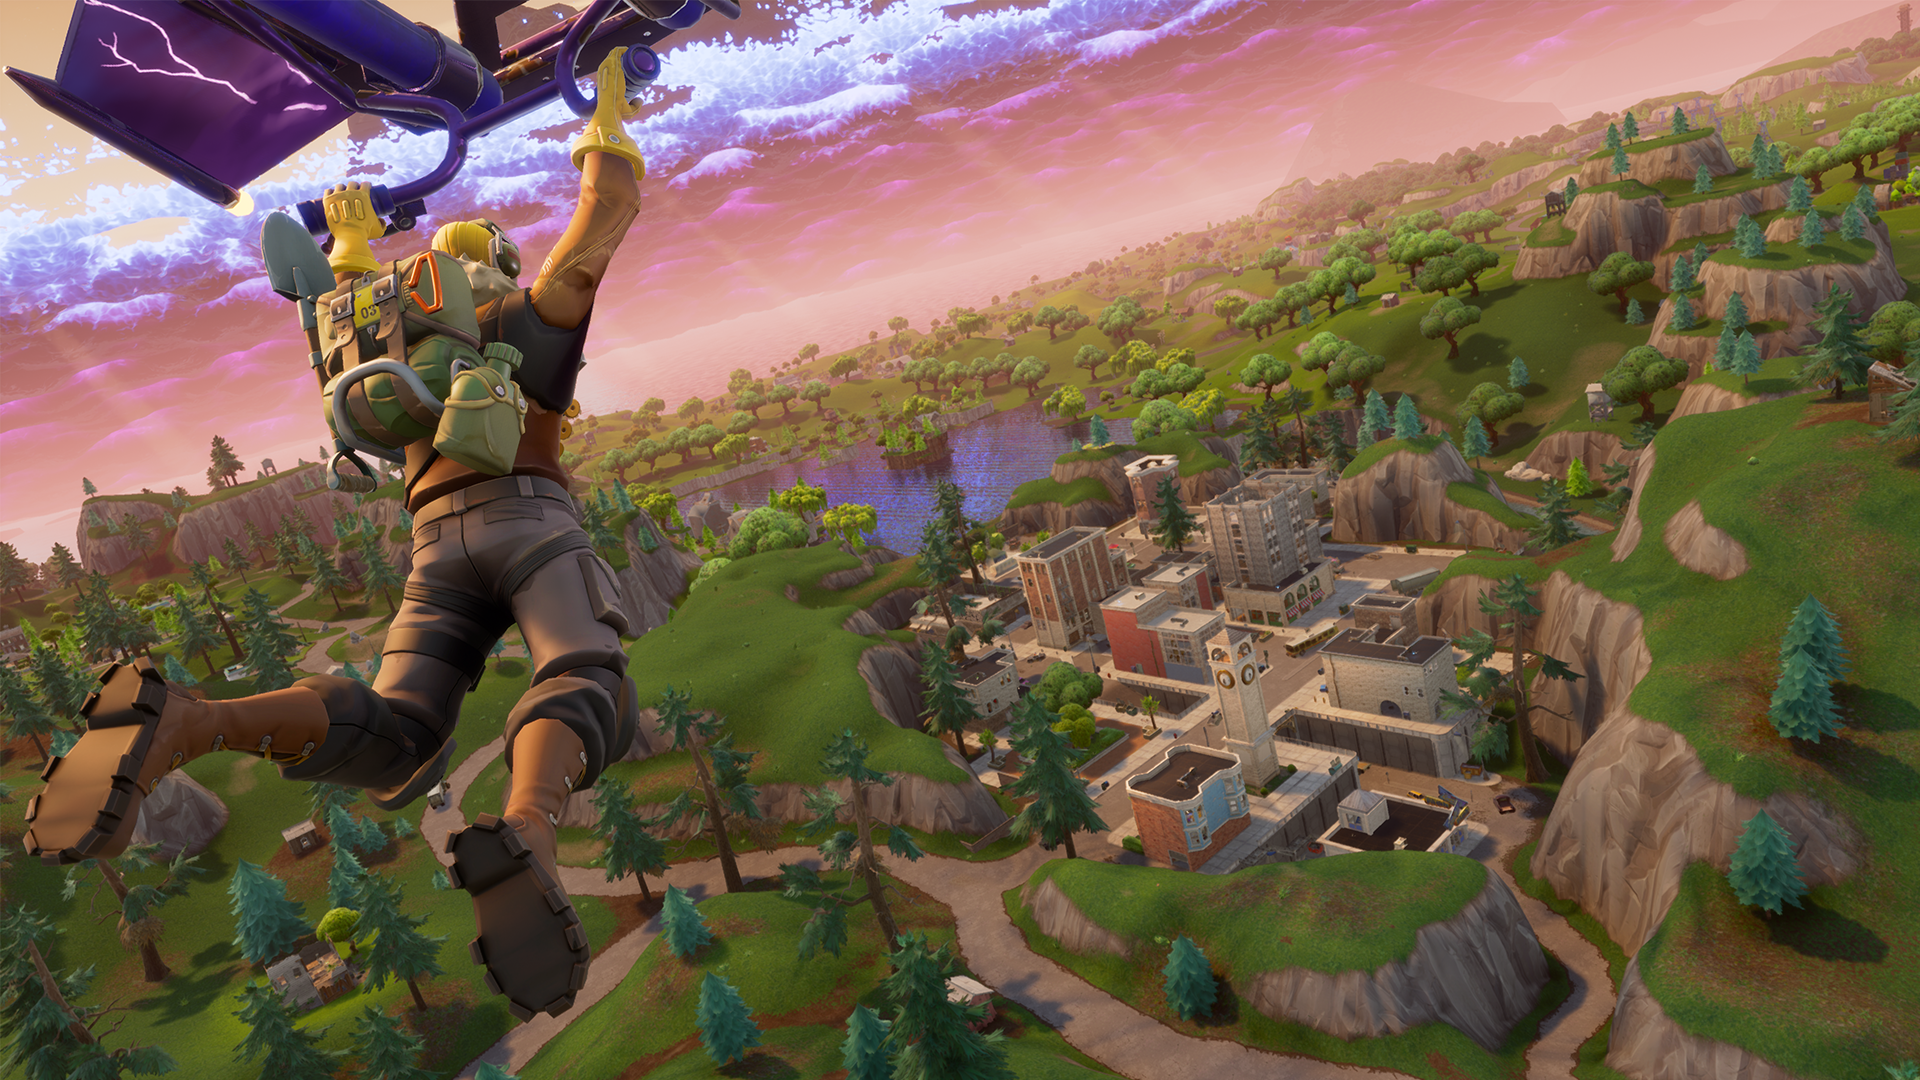 Video: Fortnite on the Nintendo Switch: This is what it looks like